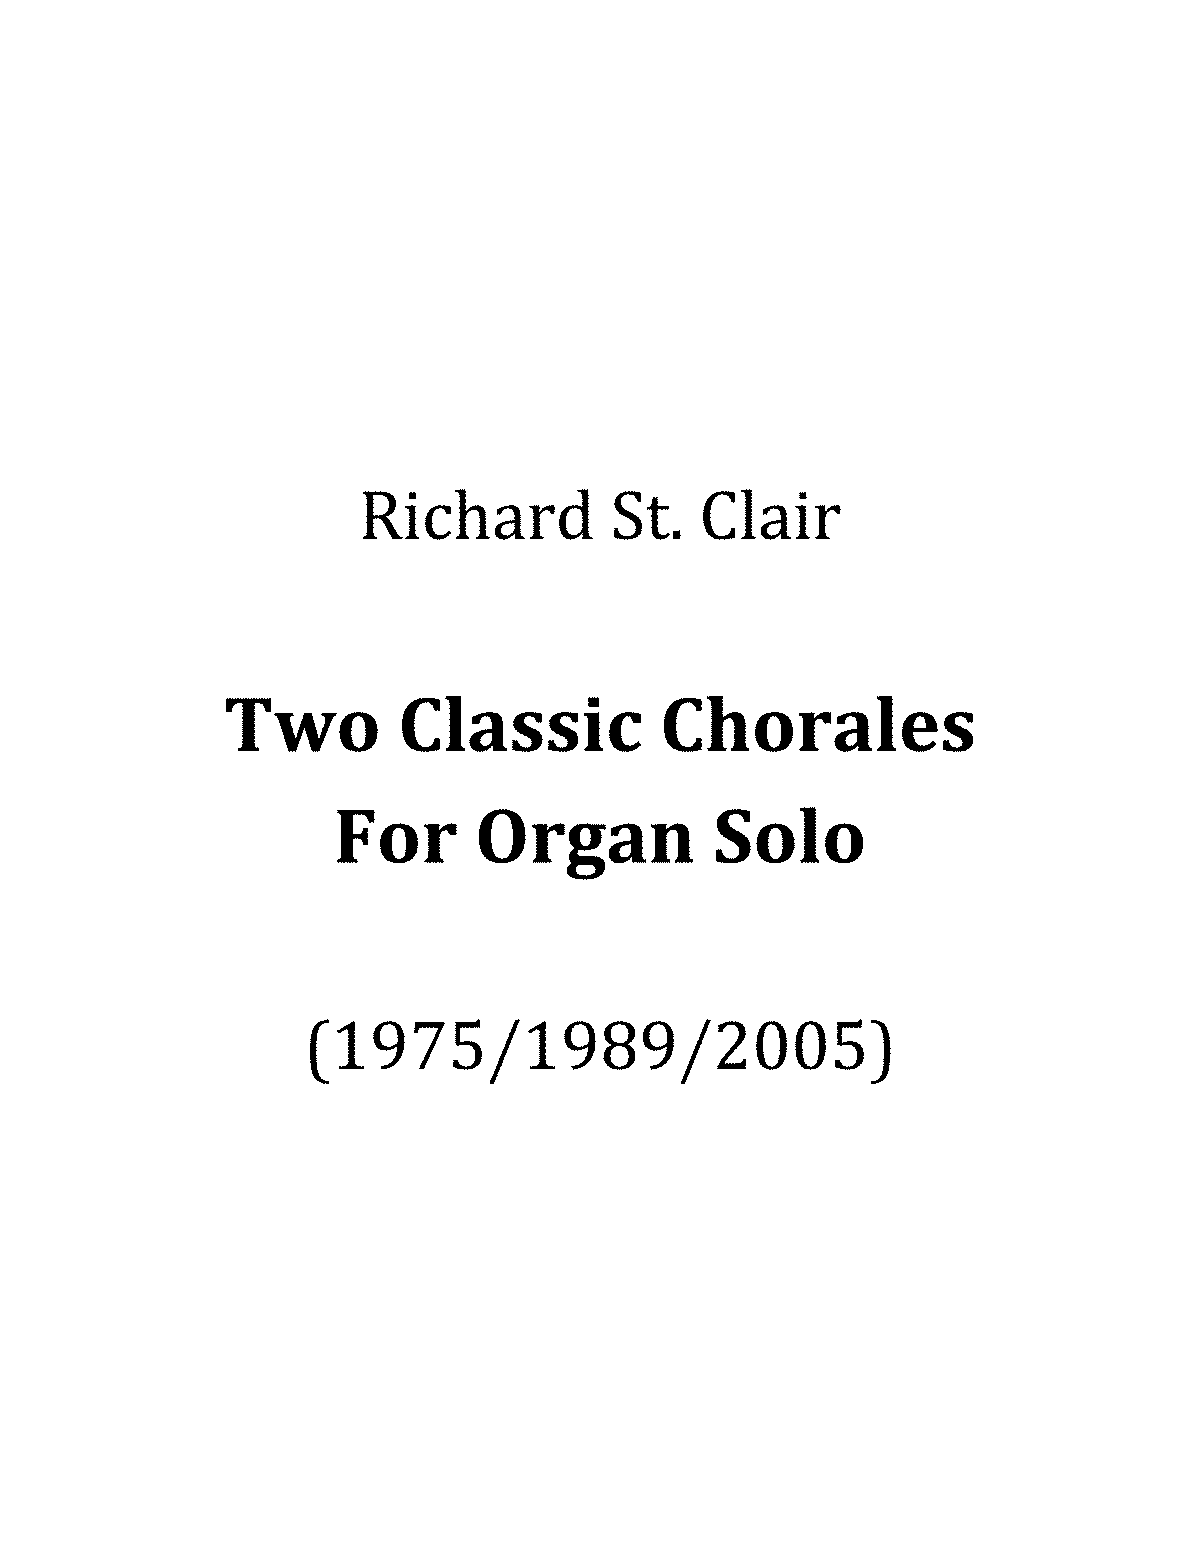 WIMA.27cb-Two-Classic-Chorales-for-Organ 1989.pdf